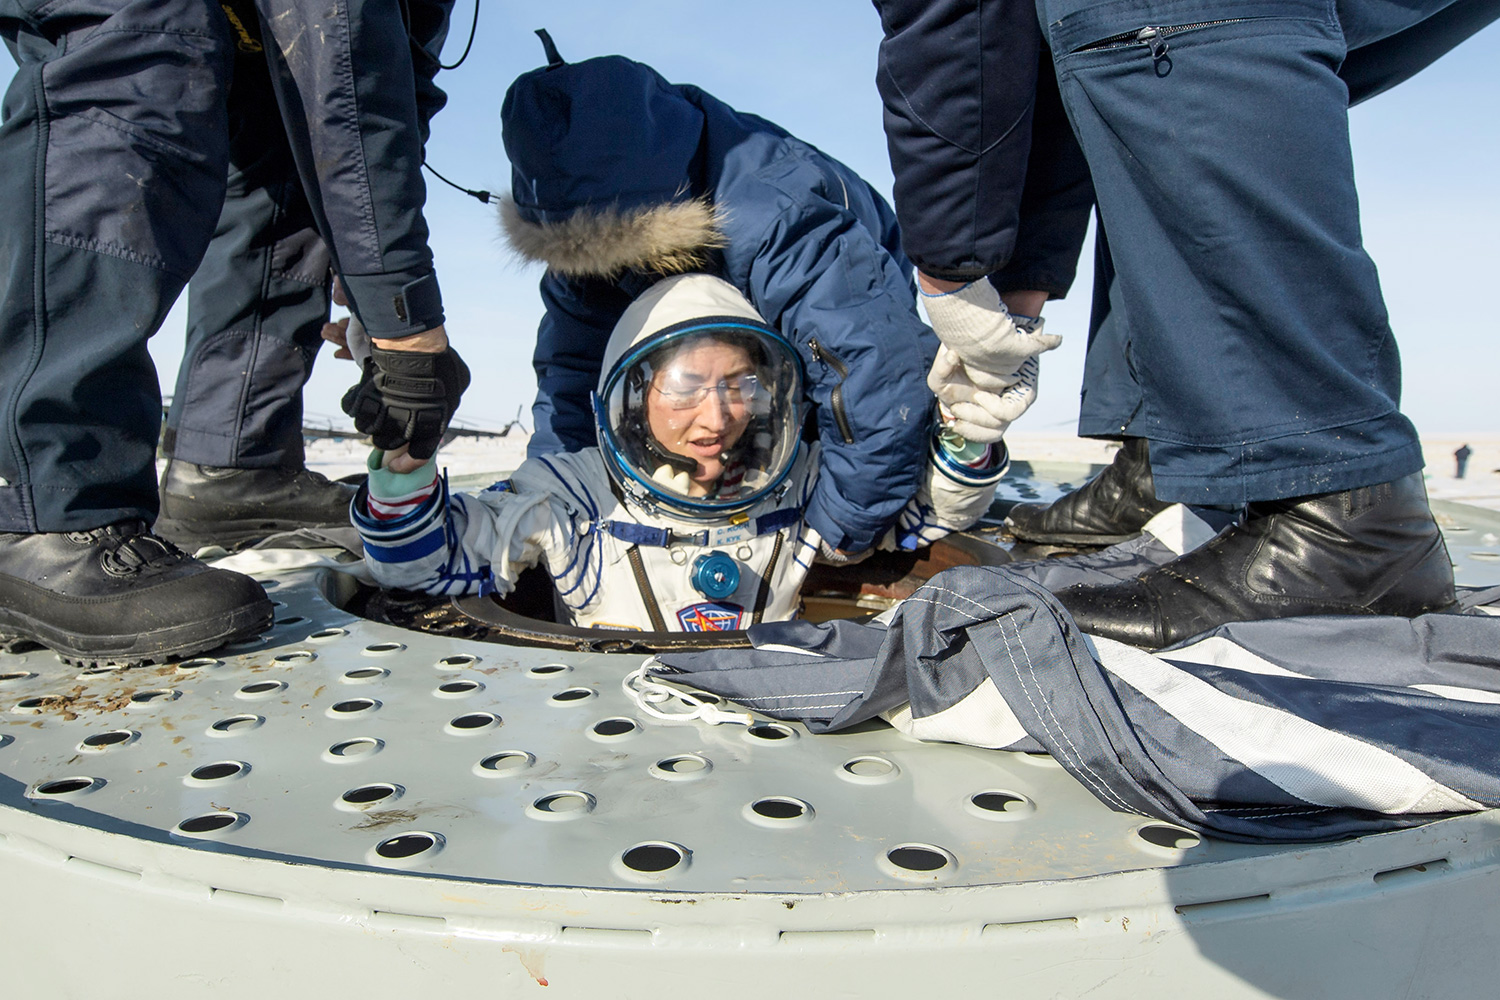 Expedition 61 Soyuz Landing. NASA astronaut Christina Koch is helped out of the Russian Soyuz MS-13 space capsule about 150 km ( 80 miles) south-east of the Kazakh town of Zhezkazgan, Kazakhstan, . The Soyuz space capsule with Koch, Italian astronaut Luca Parmitano and Russian cosmonaut Alexander Skvortsov, returning from a mission to the International Space Station landed safely in Kazakhstan. Koch wrapped up a 328-day mission on her first flight into space, providing researchers the opportunity to observe effects of long-duration spaceflight on a woman as the agency plans to return to the Moon under the Artemis program Russia Space Station, Zhezkazgan, Kazakhstan - 06 Feb 2020